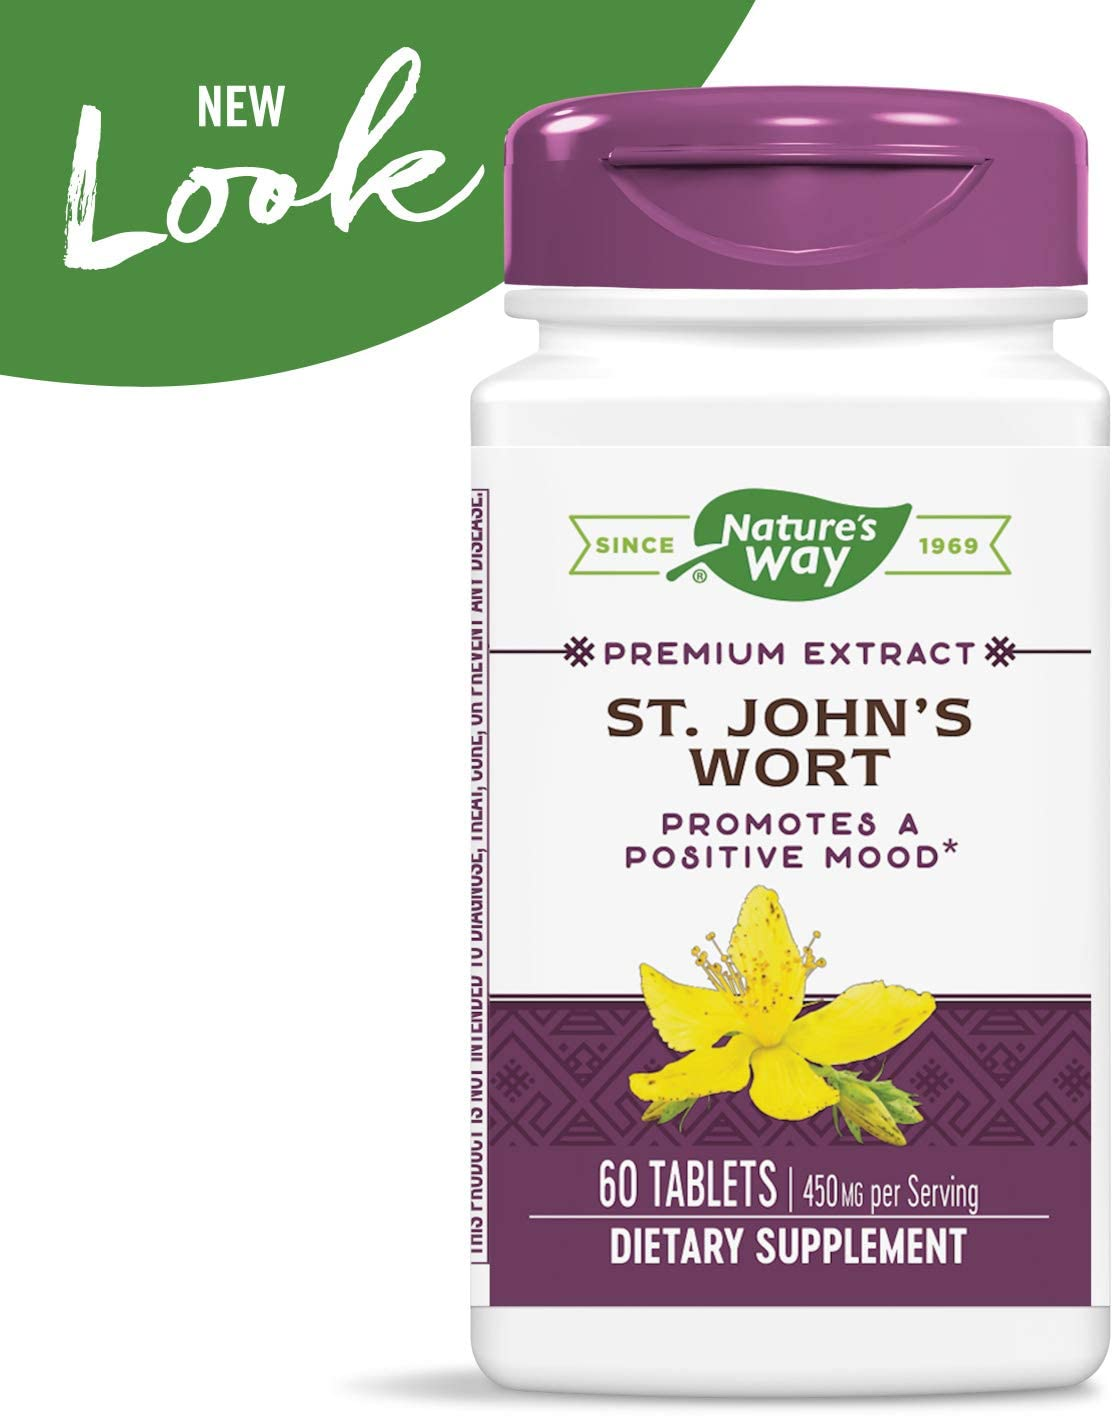 Nature's Way St. John's Wort Standardized Extract Mood Support, 450 mg per Serving, 60 Count (Packaging May Vary): Health & Personal Care